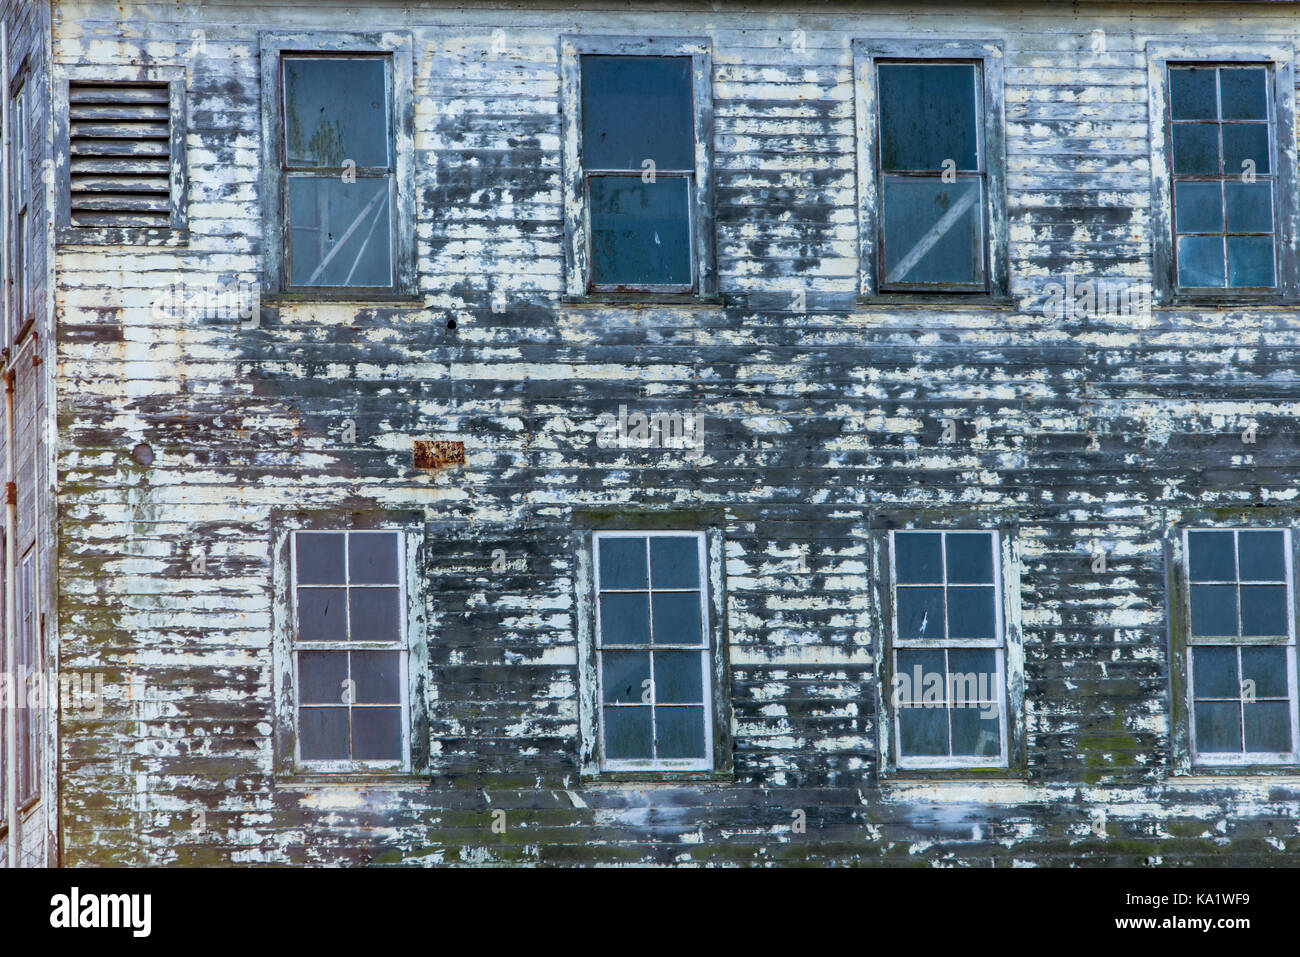 Derelict old building with windows on Alcatraz Island, San Francisco Bay - Stock Image